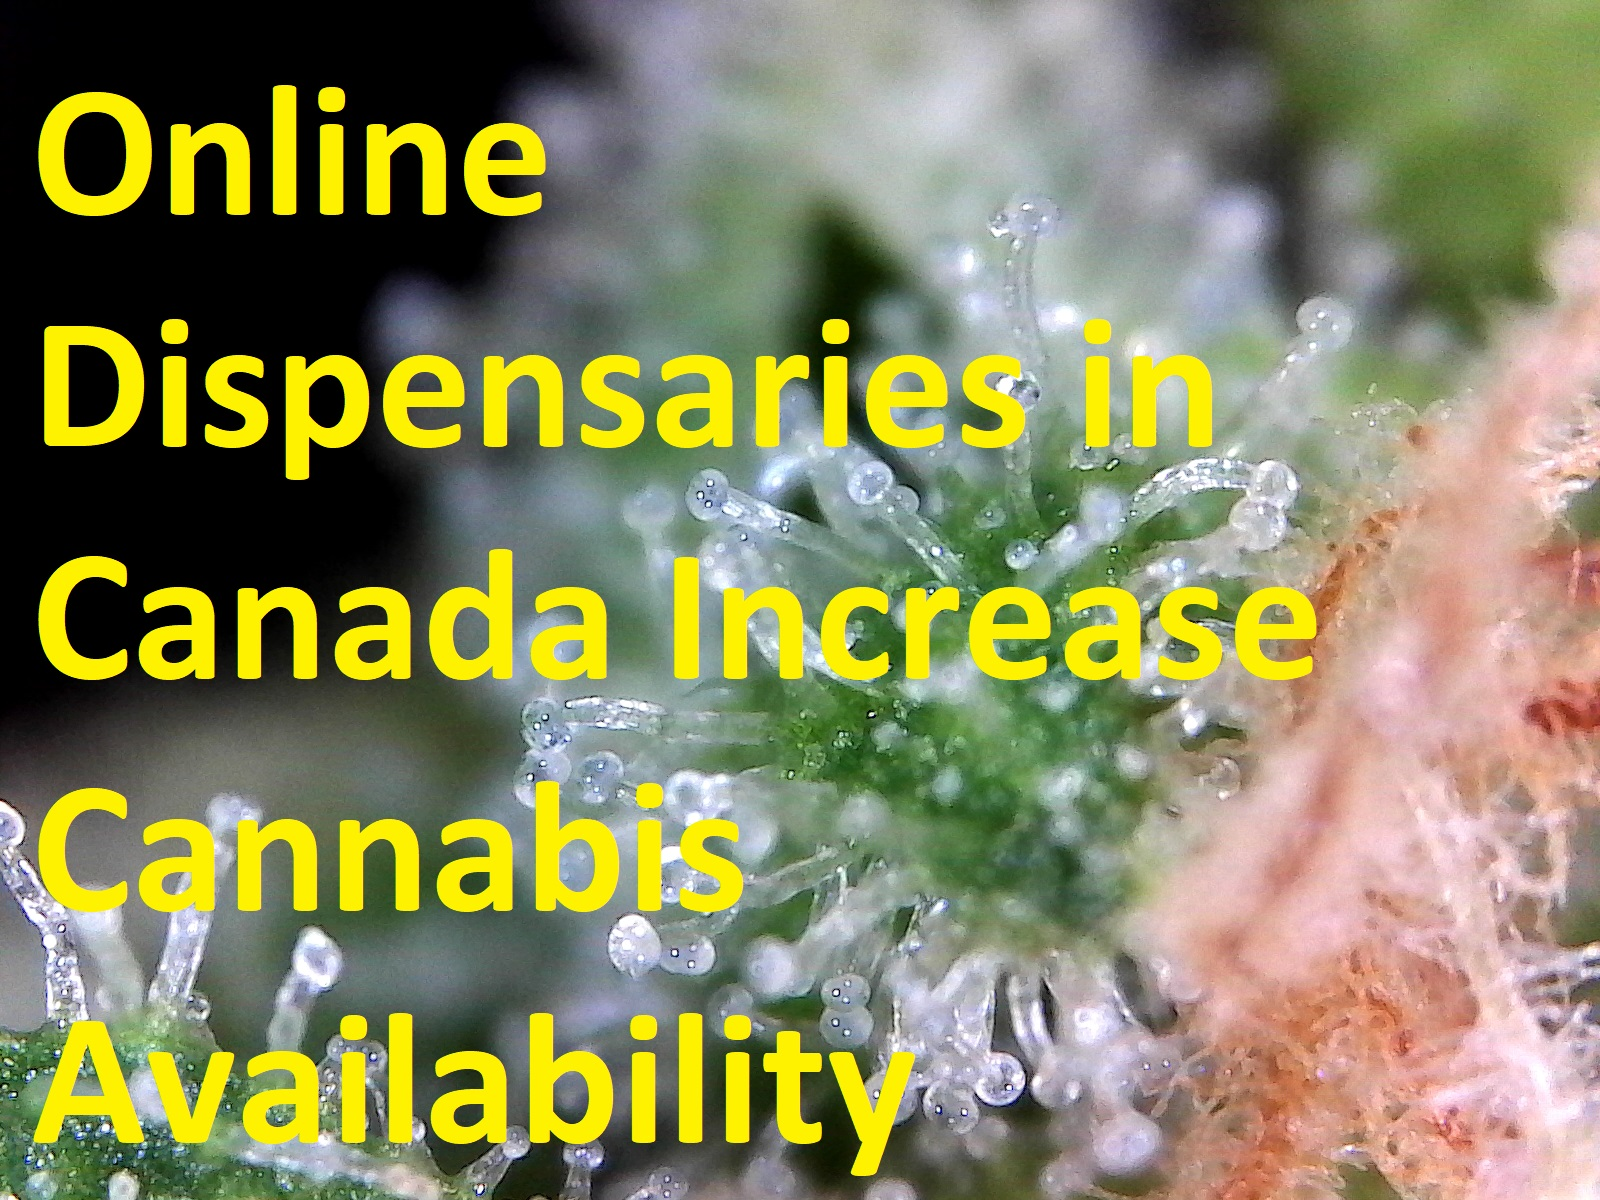 Online dispensaries